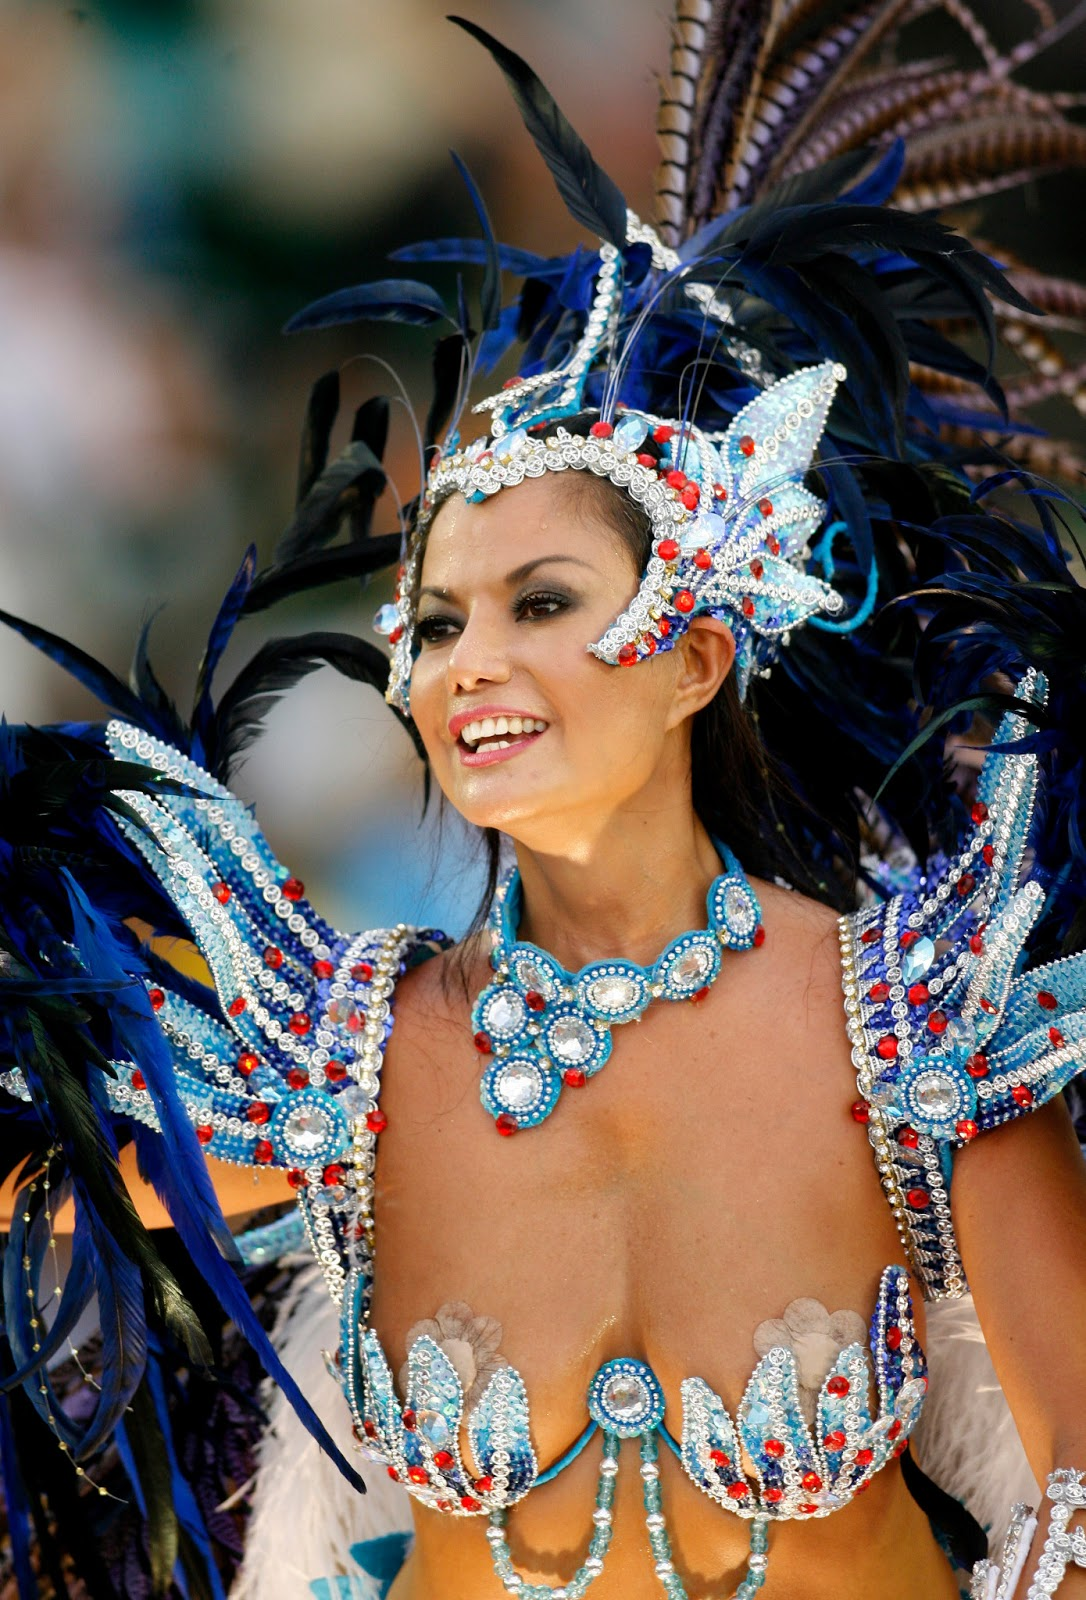 Rio de Janeiro Carnival, Posted on 2nd March 2012